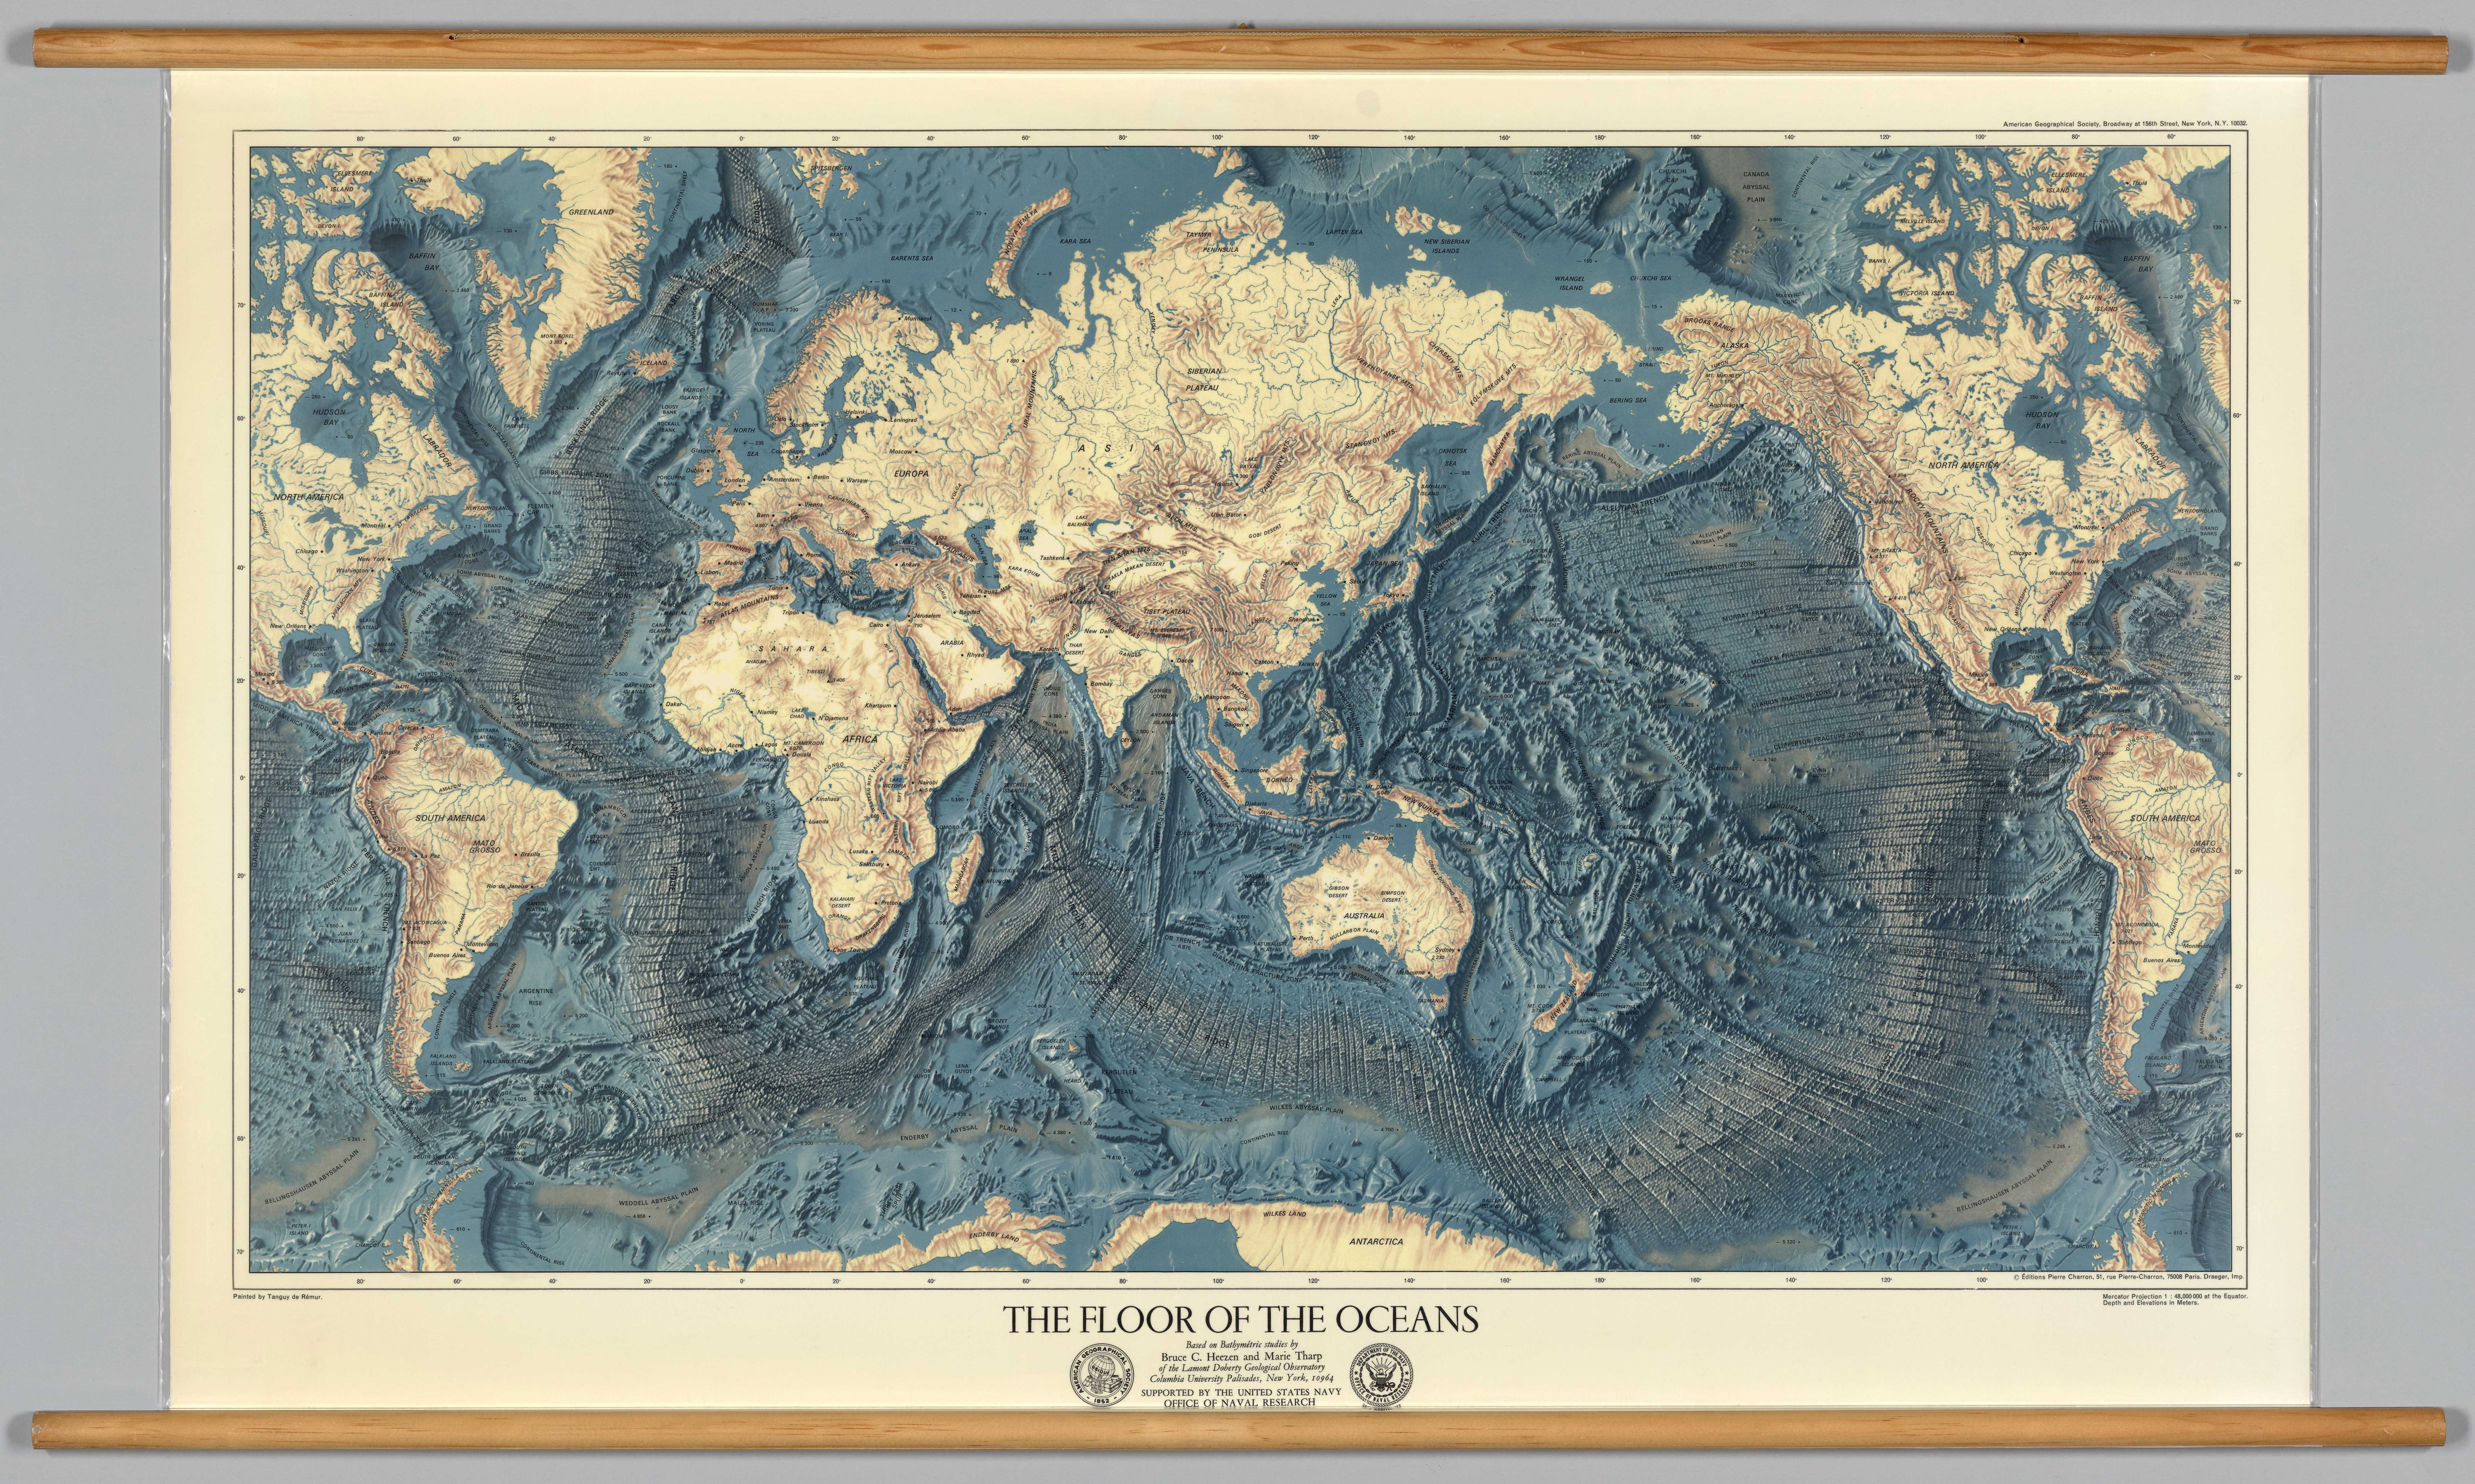 High Resolution Map of the Worlds Ocean Floors  AreWeDreaming